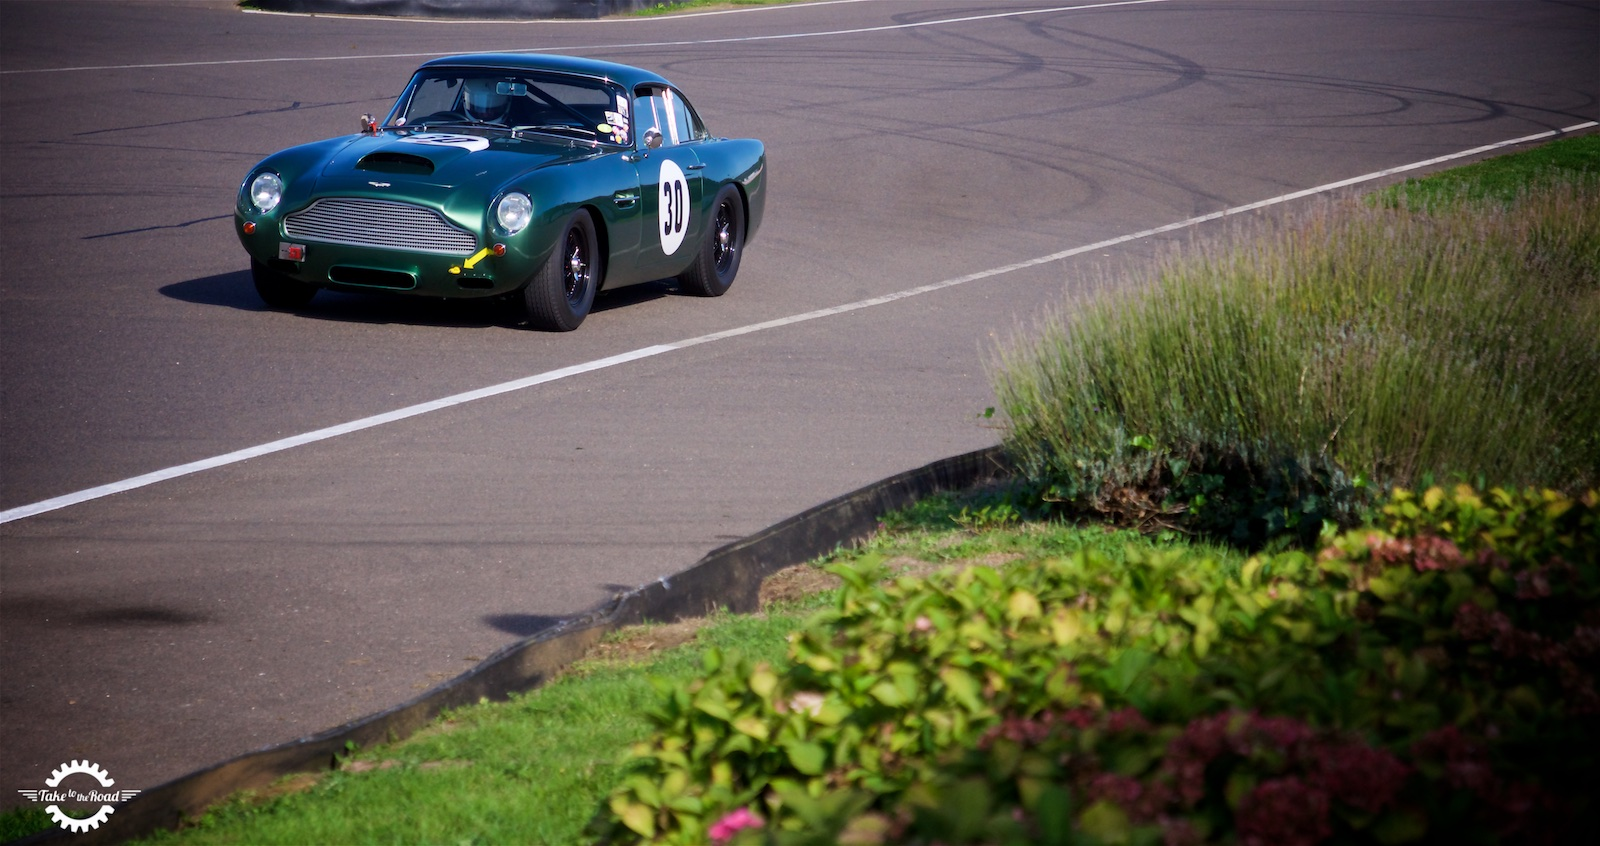 Festival of Speed Central Feature to celebrate Aston Martin